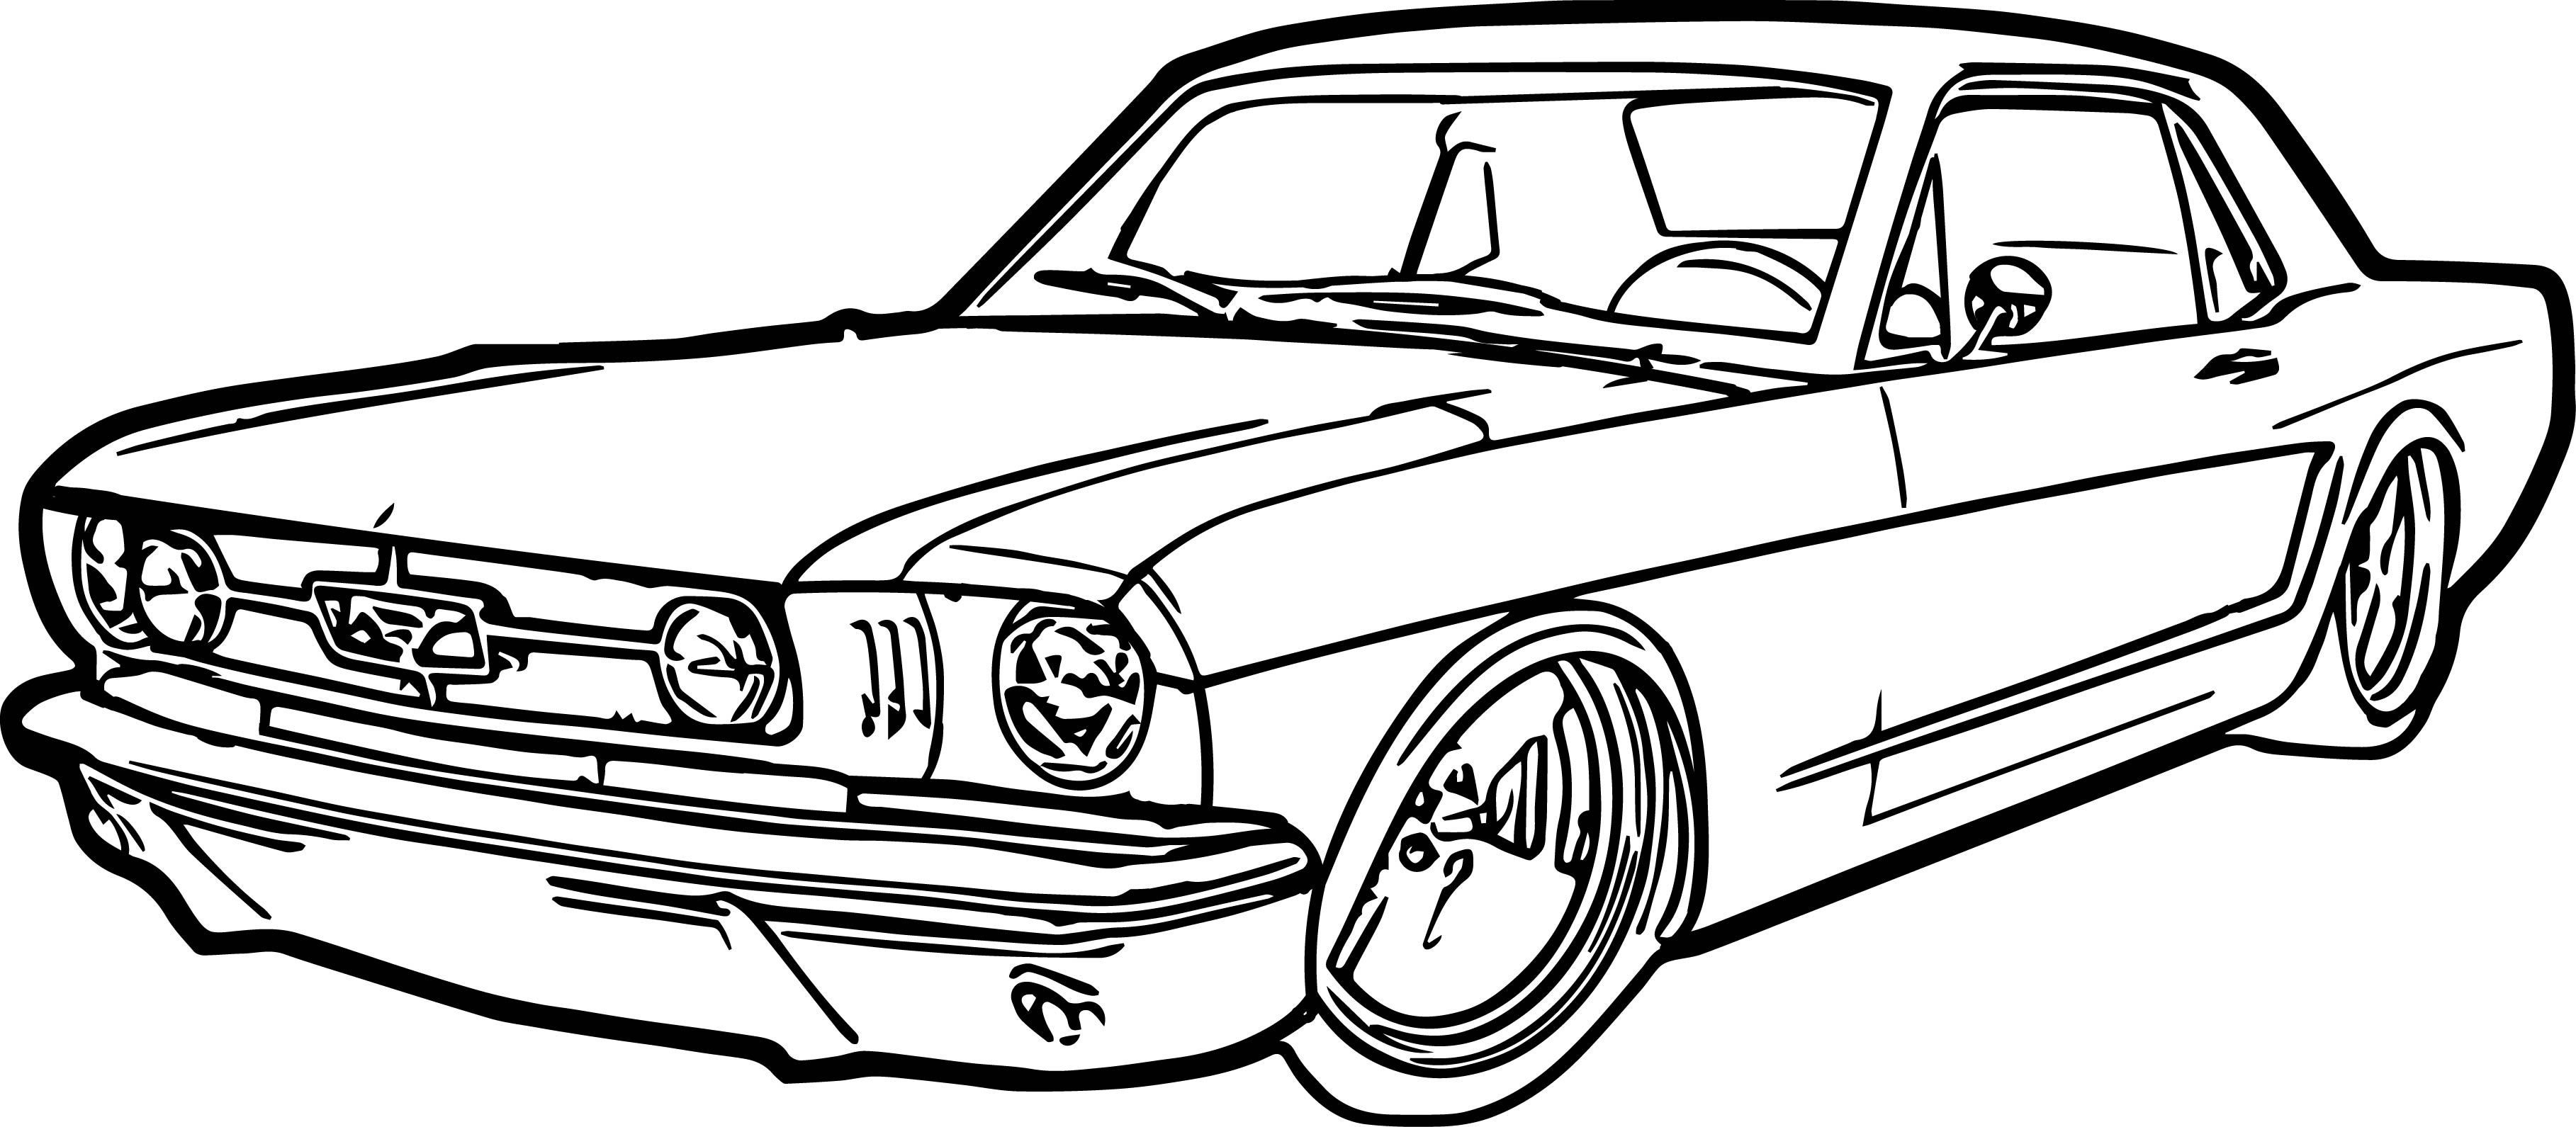 Car Coloring Pages | Free download best Car Coloring Pages on ...